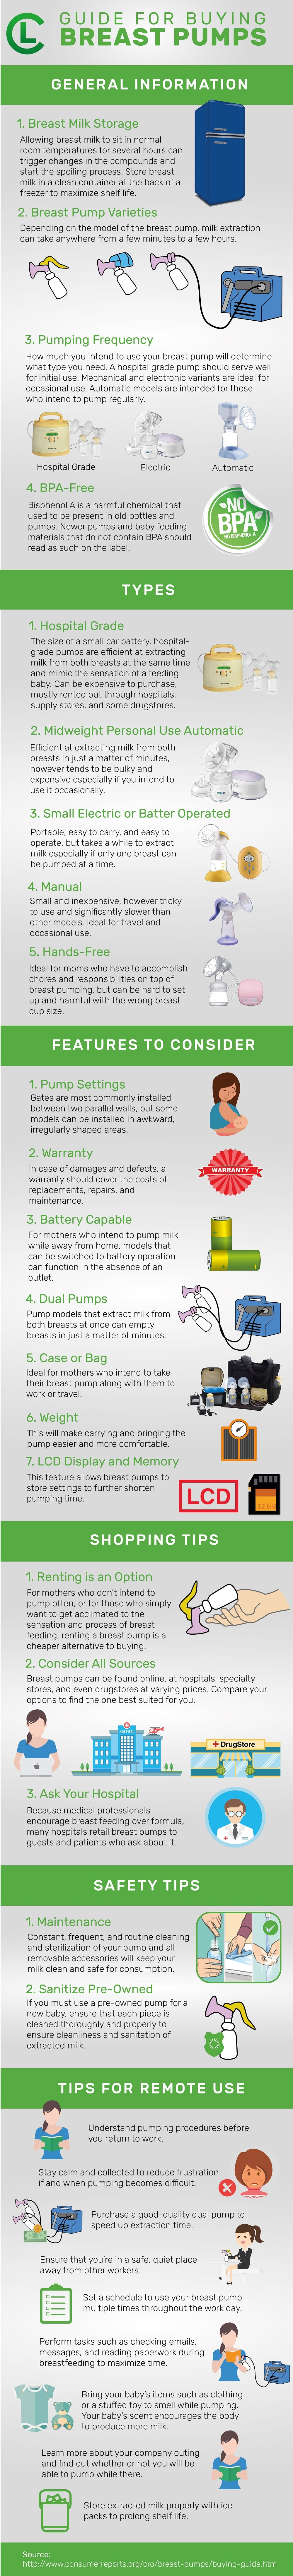 Guide For Buying Breast Pumps Infographic